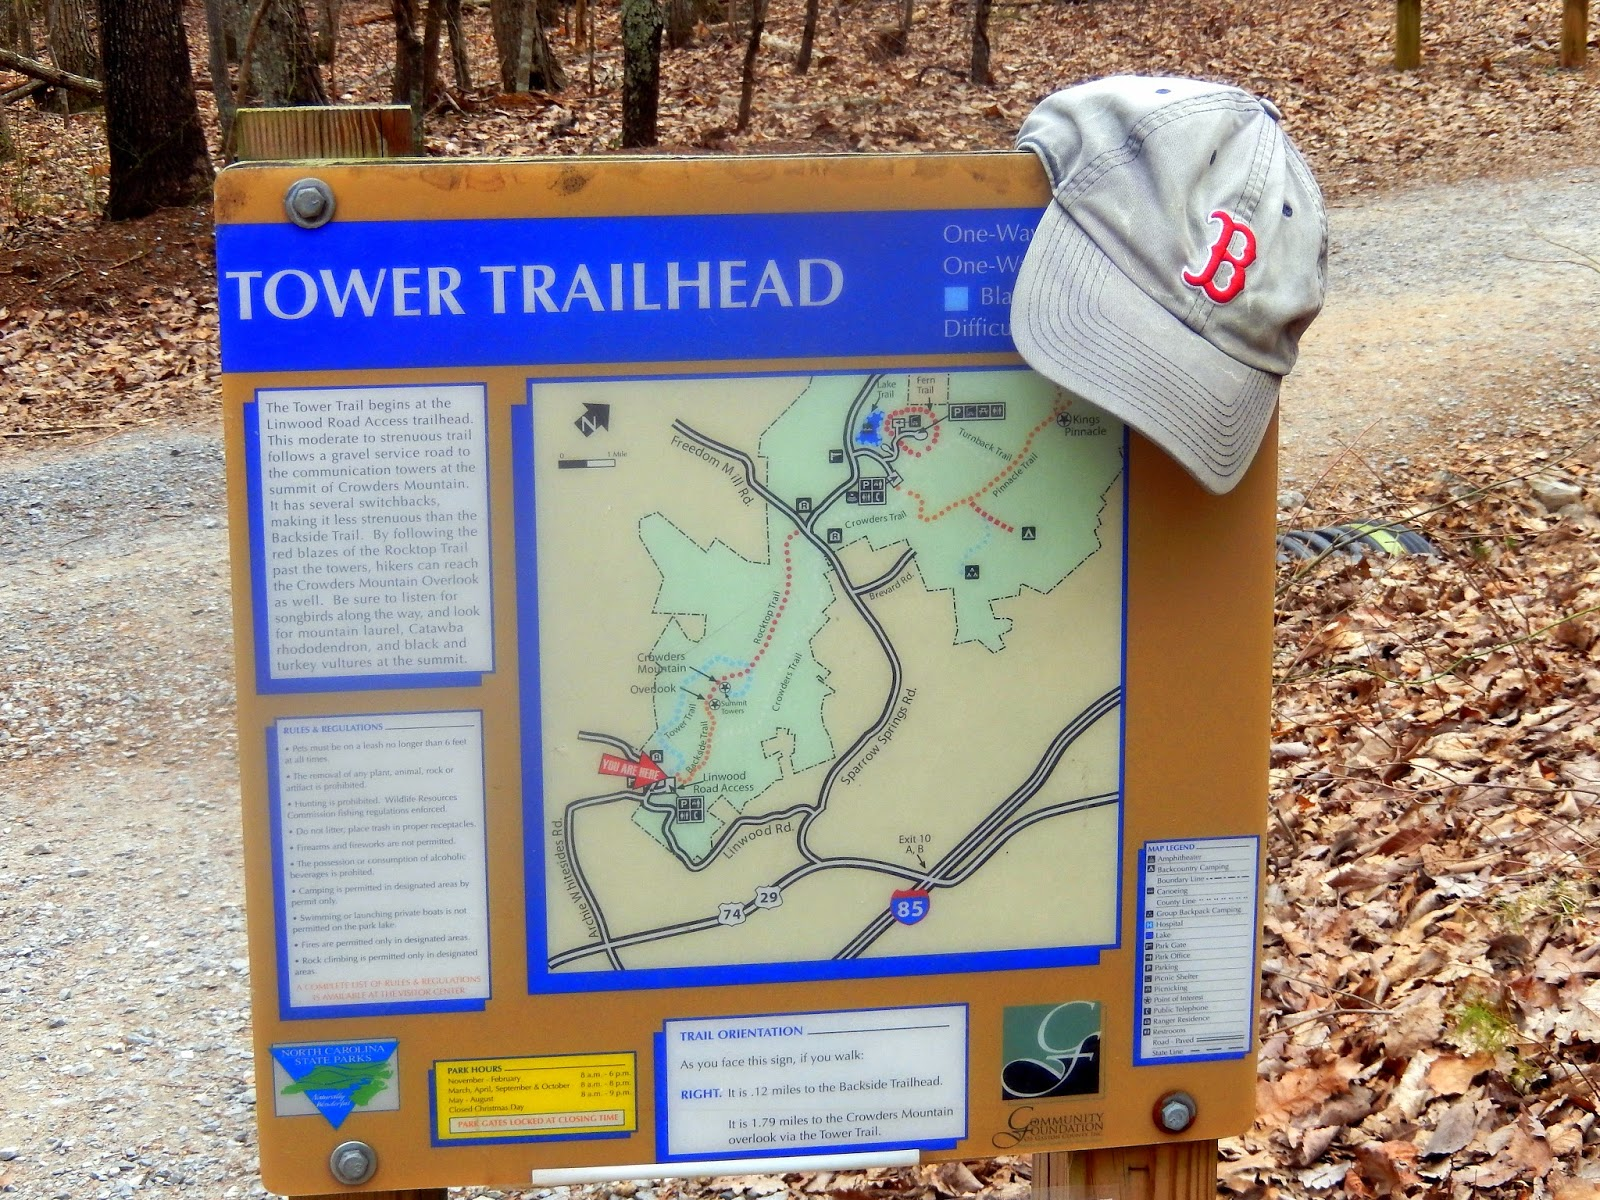 View crowder's mountain loop in a larger map. Hiking With A Fat Bald White Guy Crowders Mountain State Park Summit Trail